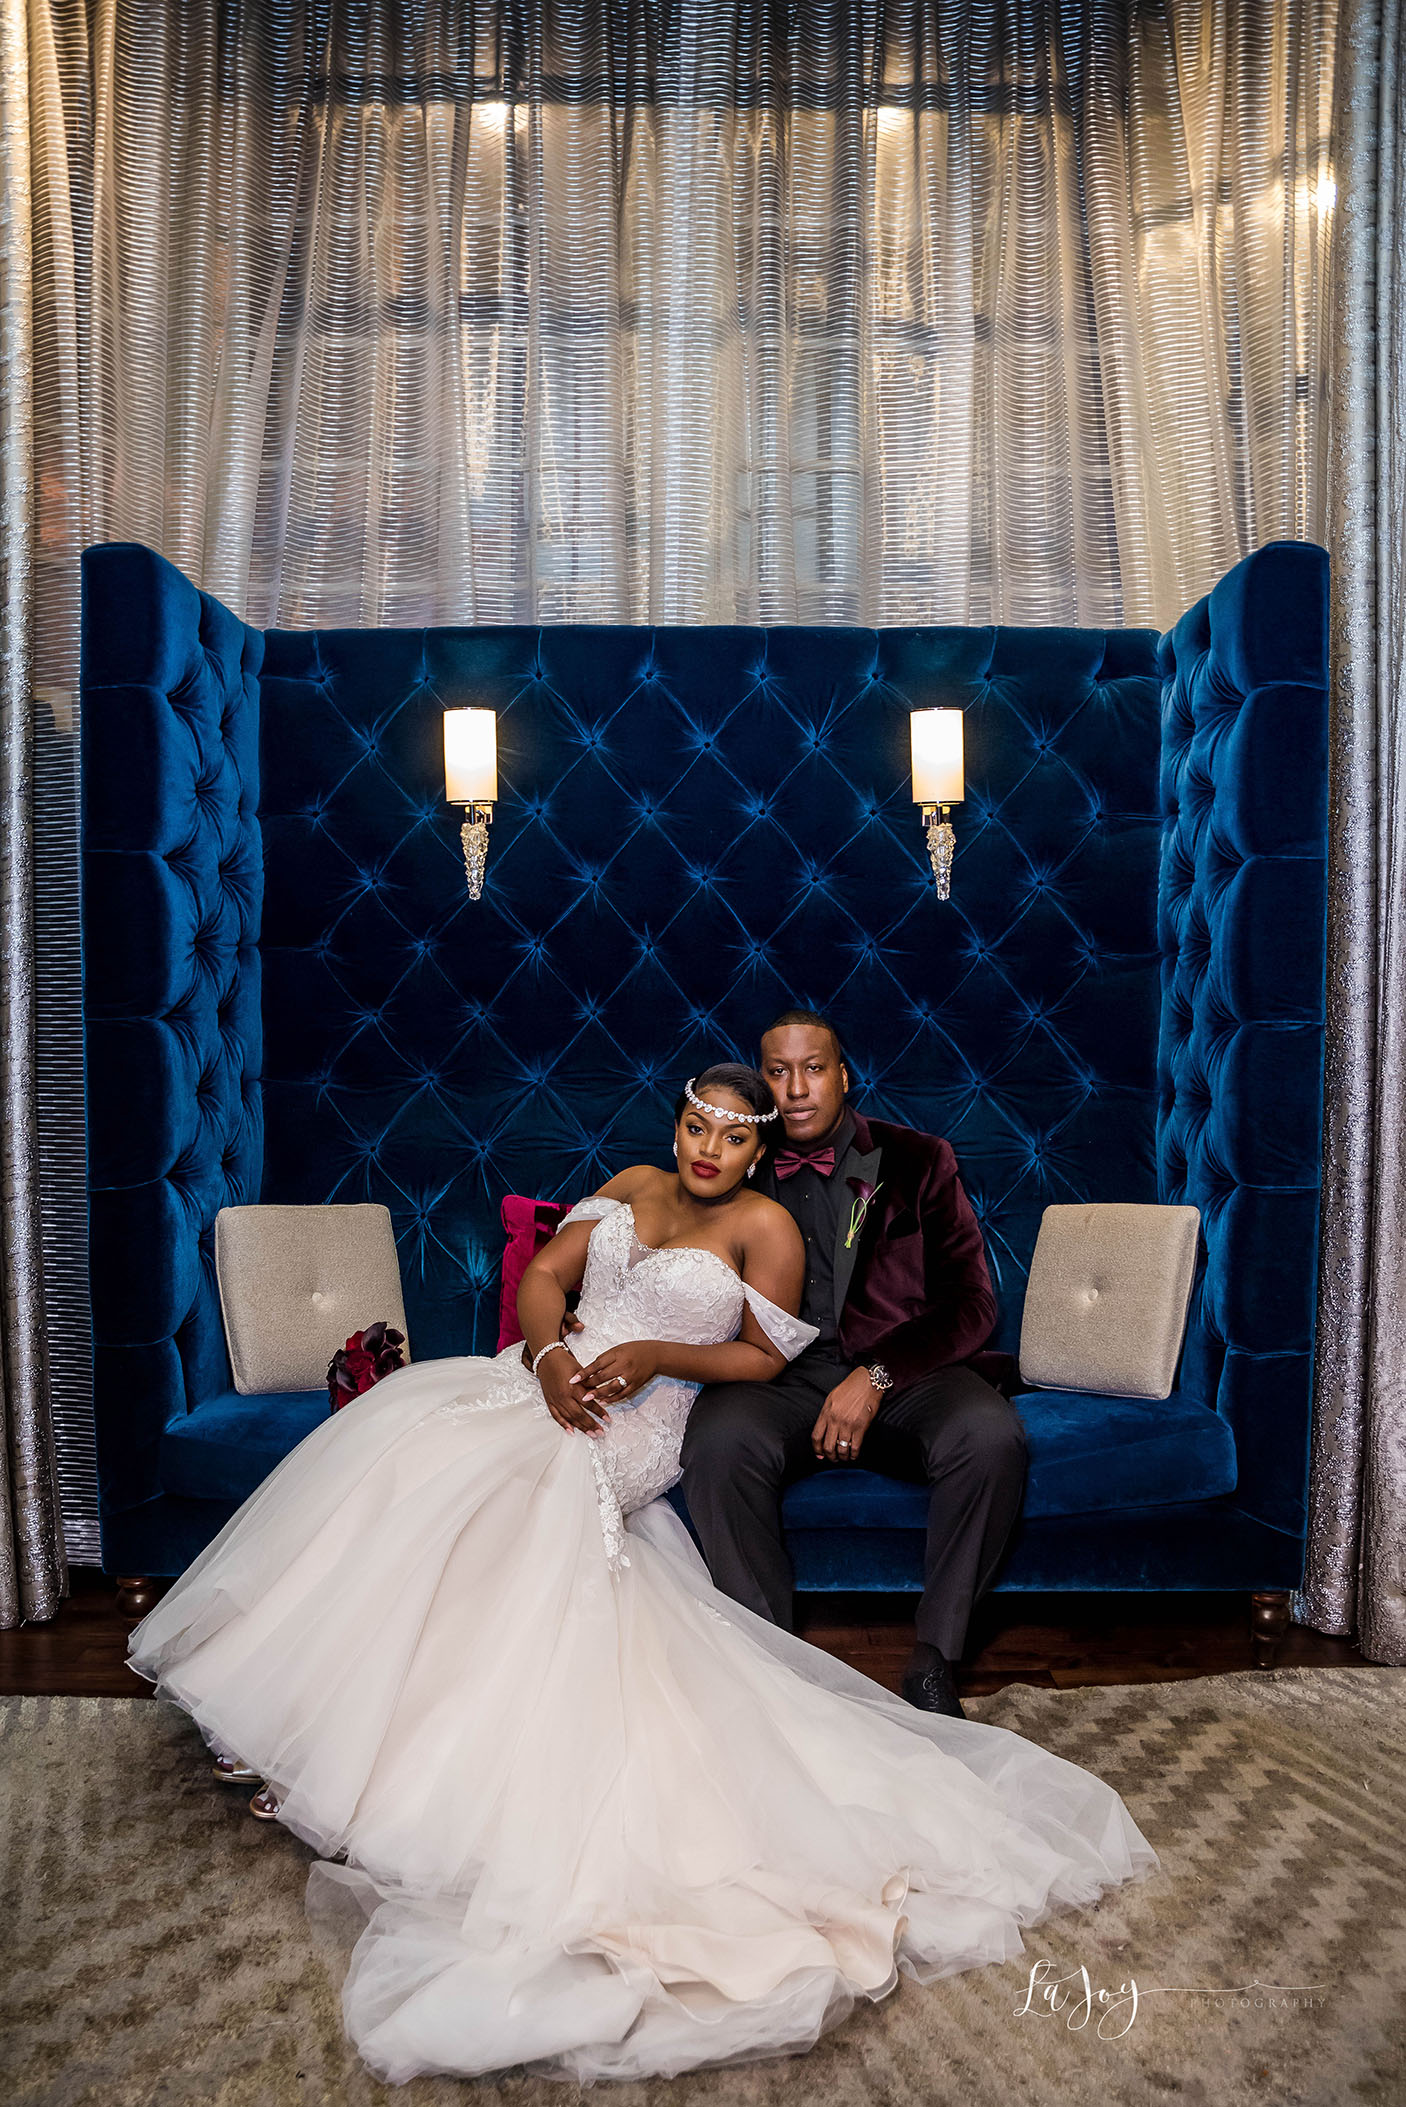 LaJoy African American and Multicultural Wedding Photography Atlanta Georgia